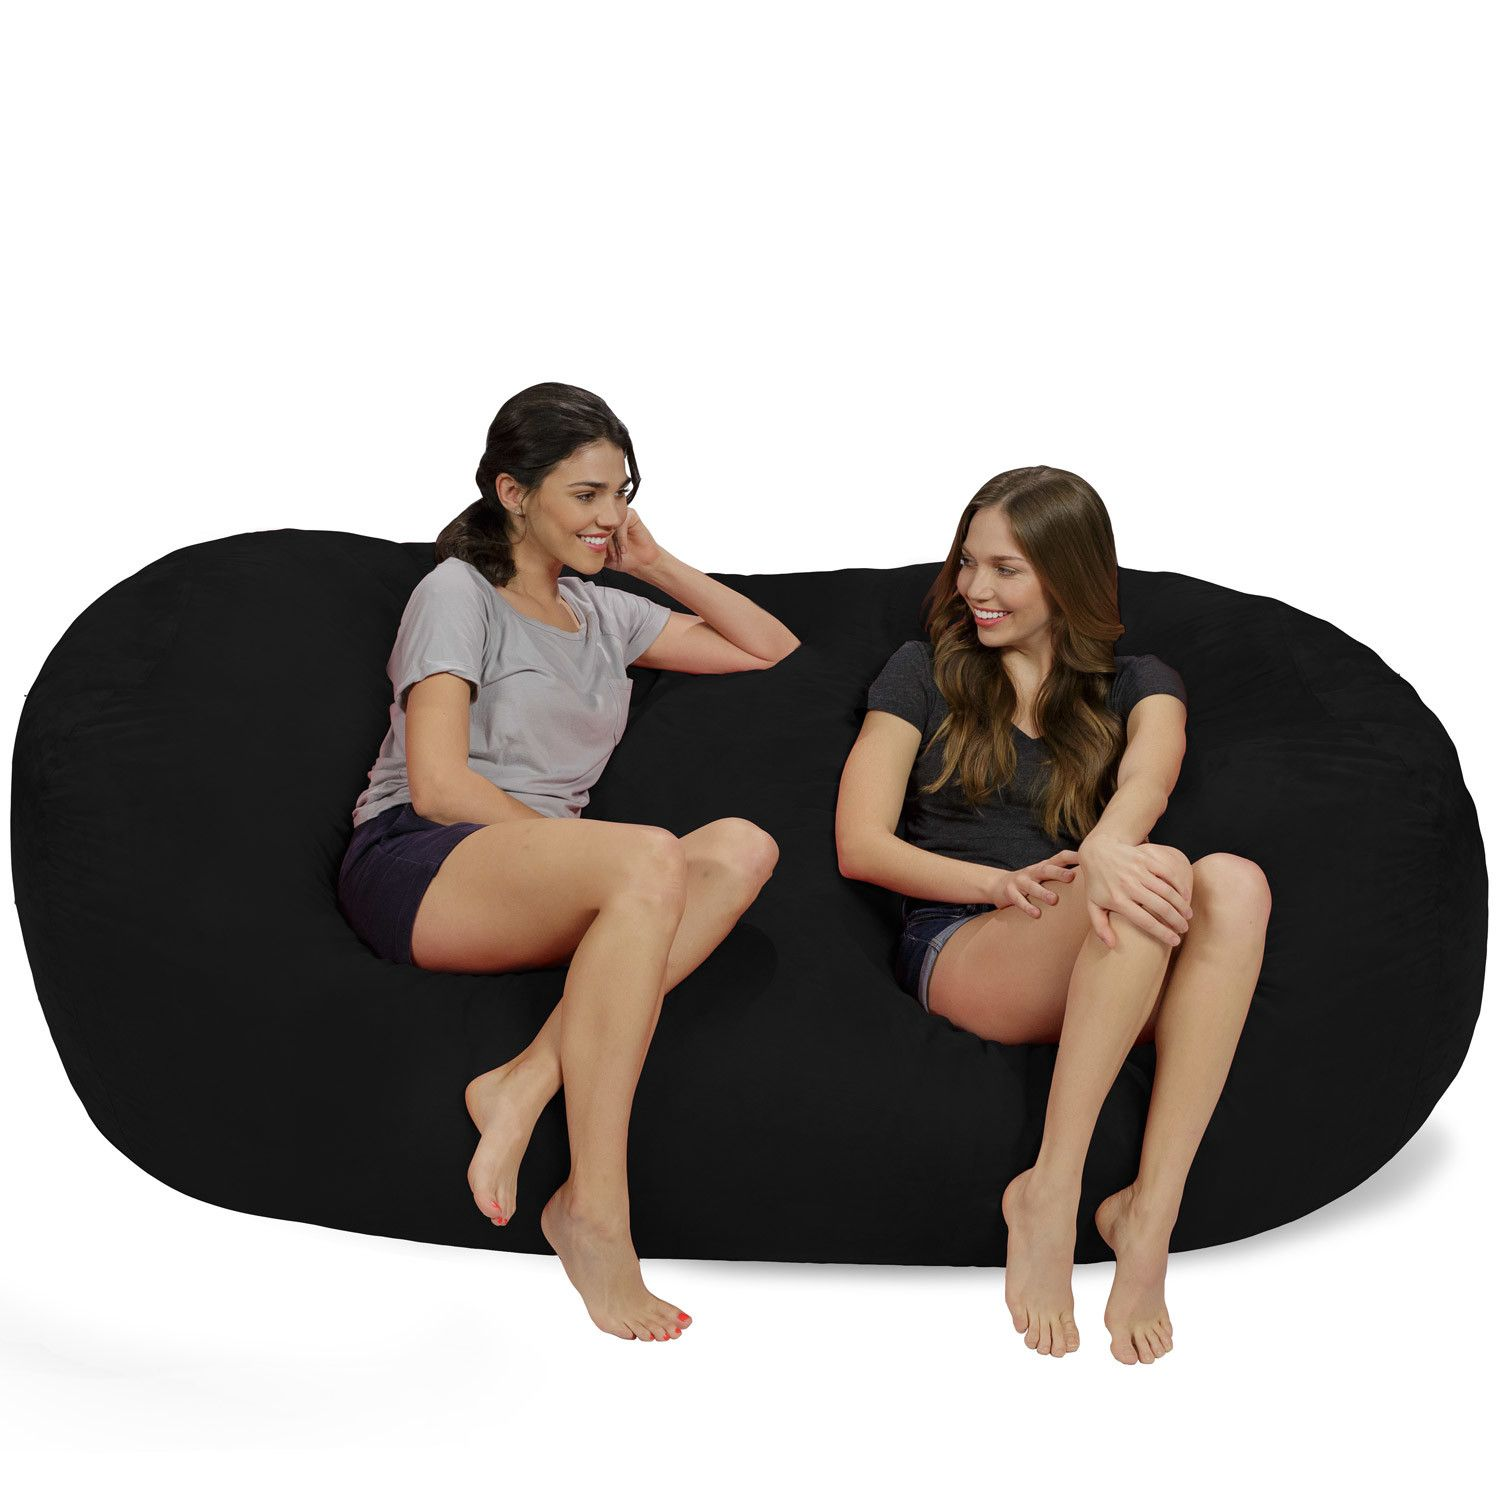 Shop AllModern for Bean Bags for the best selection in